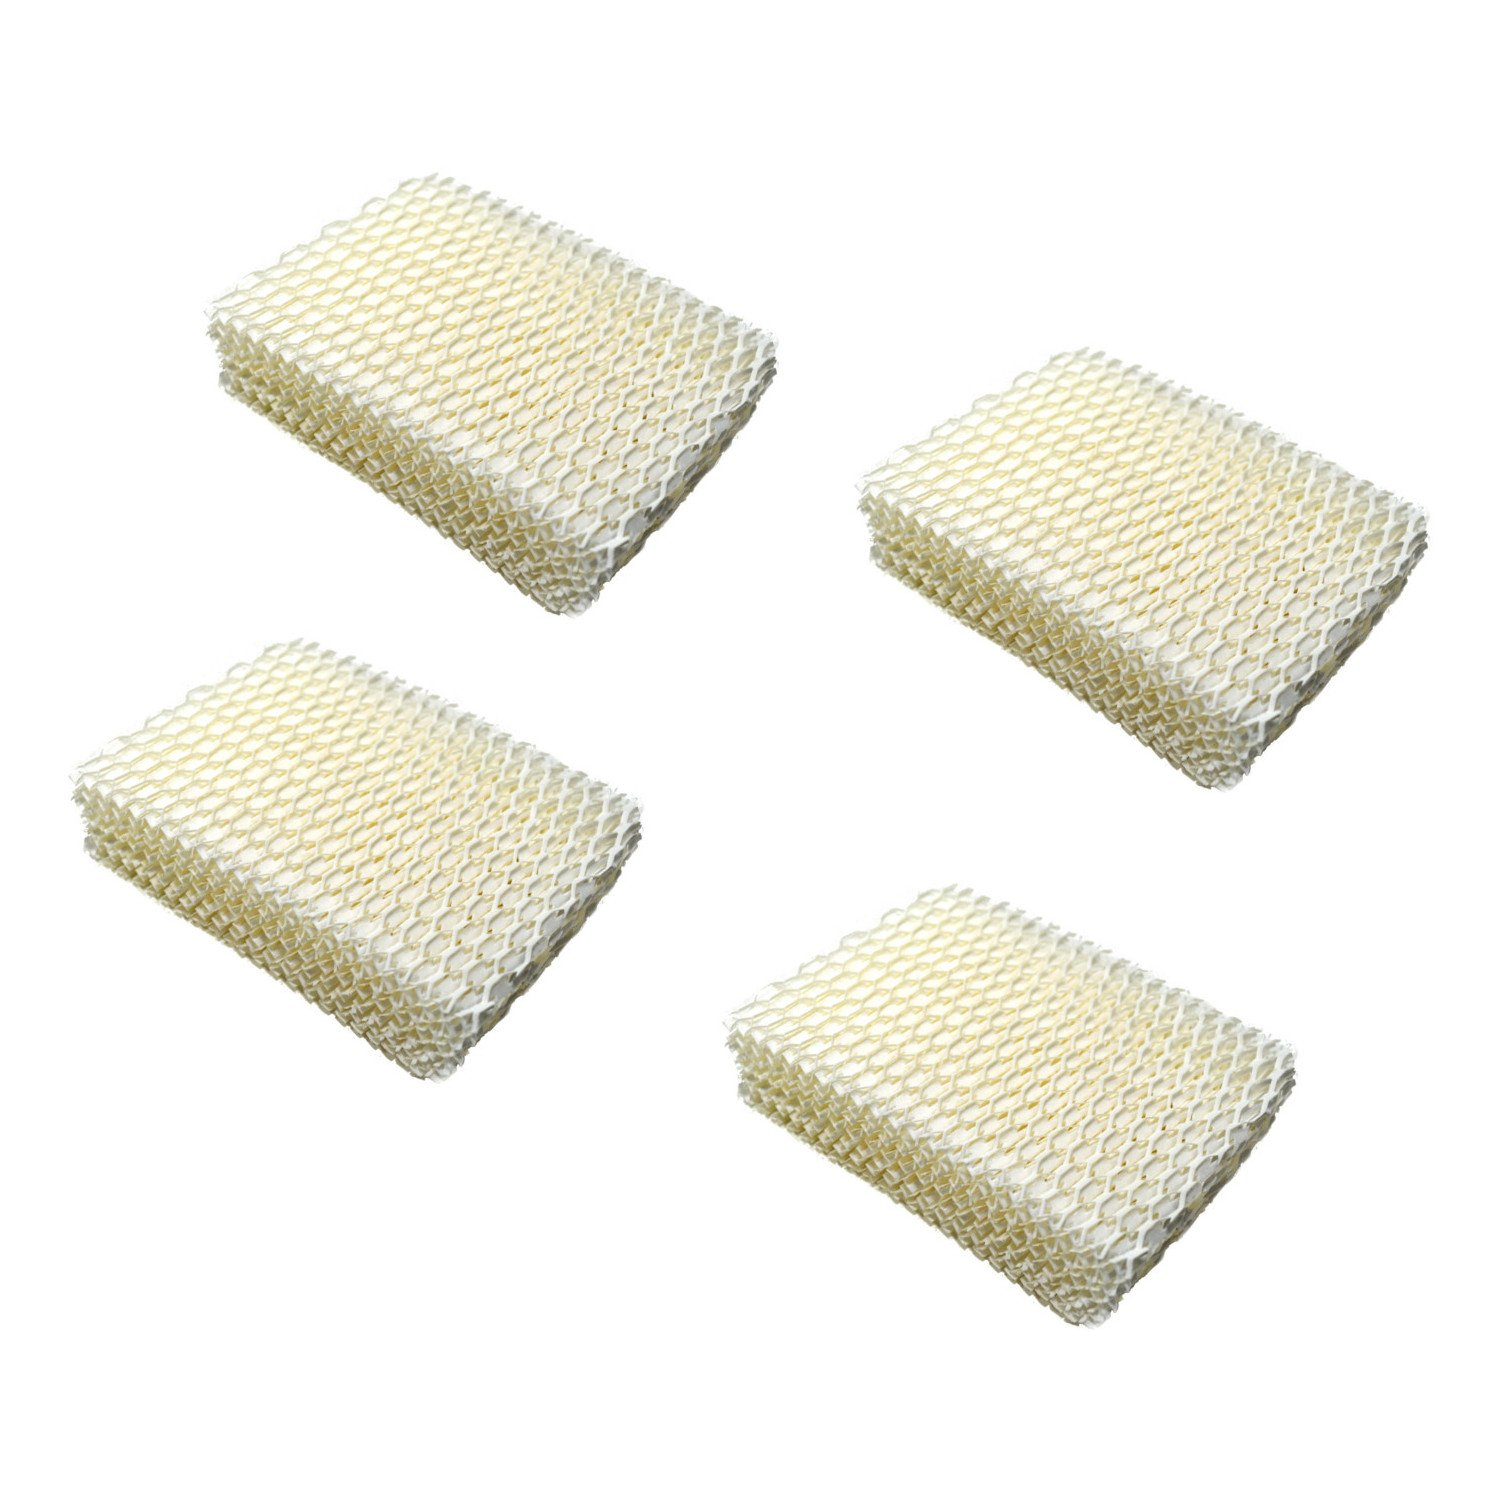 HQRP 4-pack Humidifier Wick Filter for ProCare PCCM-832N Cool Mist Humidifier, AC813 PCWF813 PCWF813-24 Replacement + HQRP Coaster